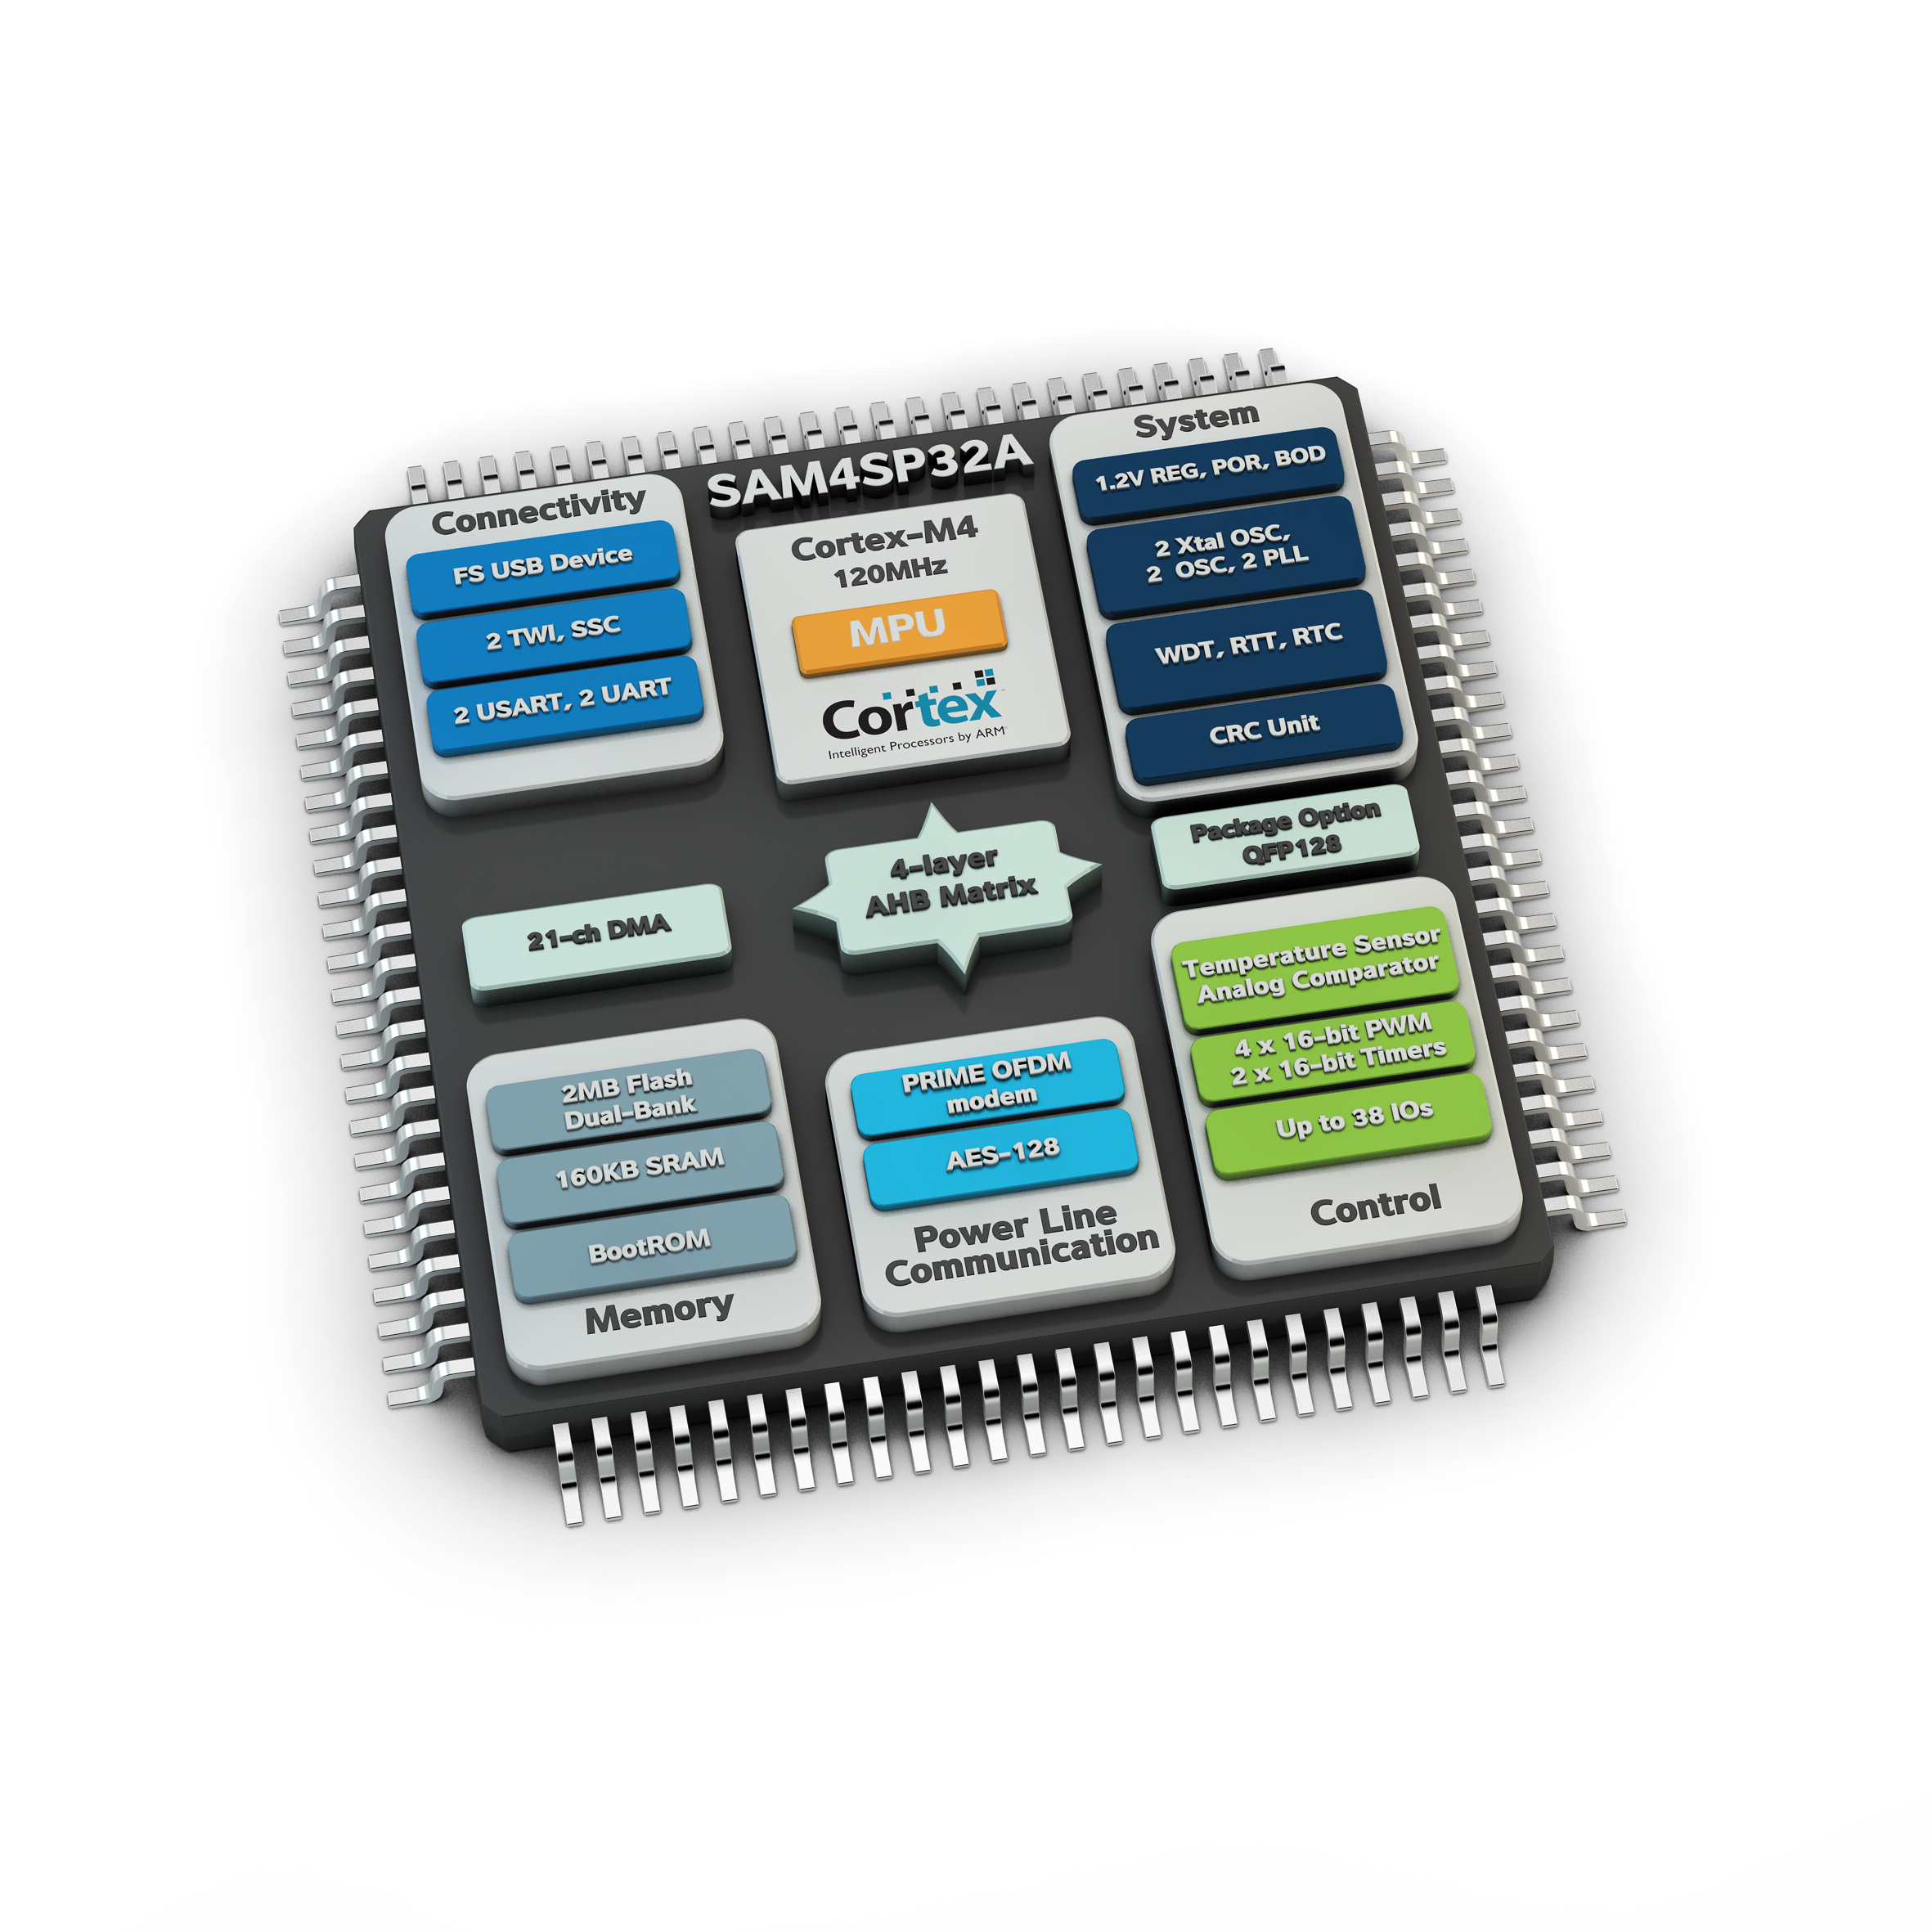 Atmel shows first ARM Cortex M4-based single-chip system for PRIME